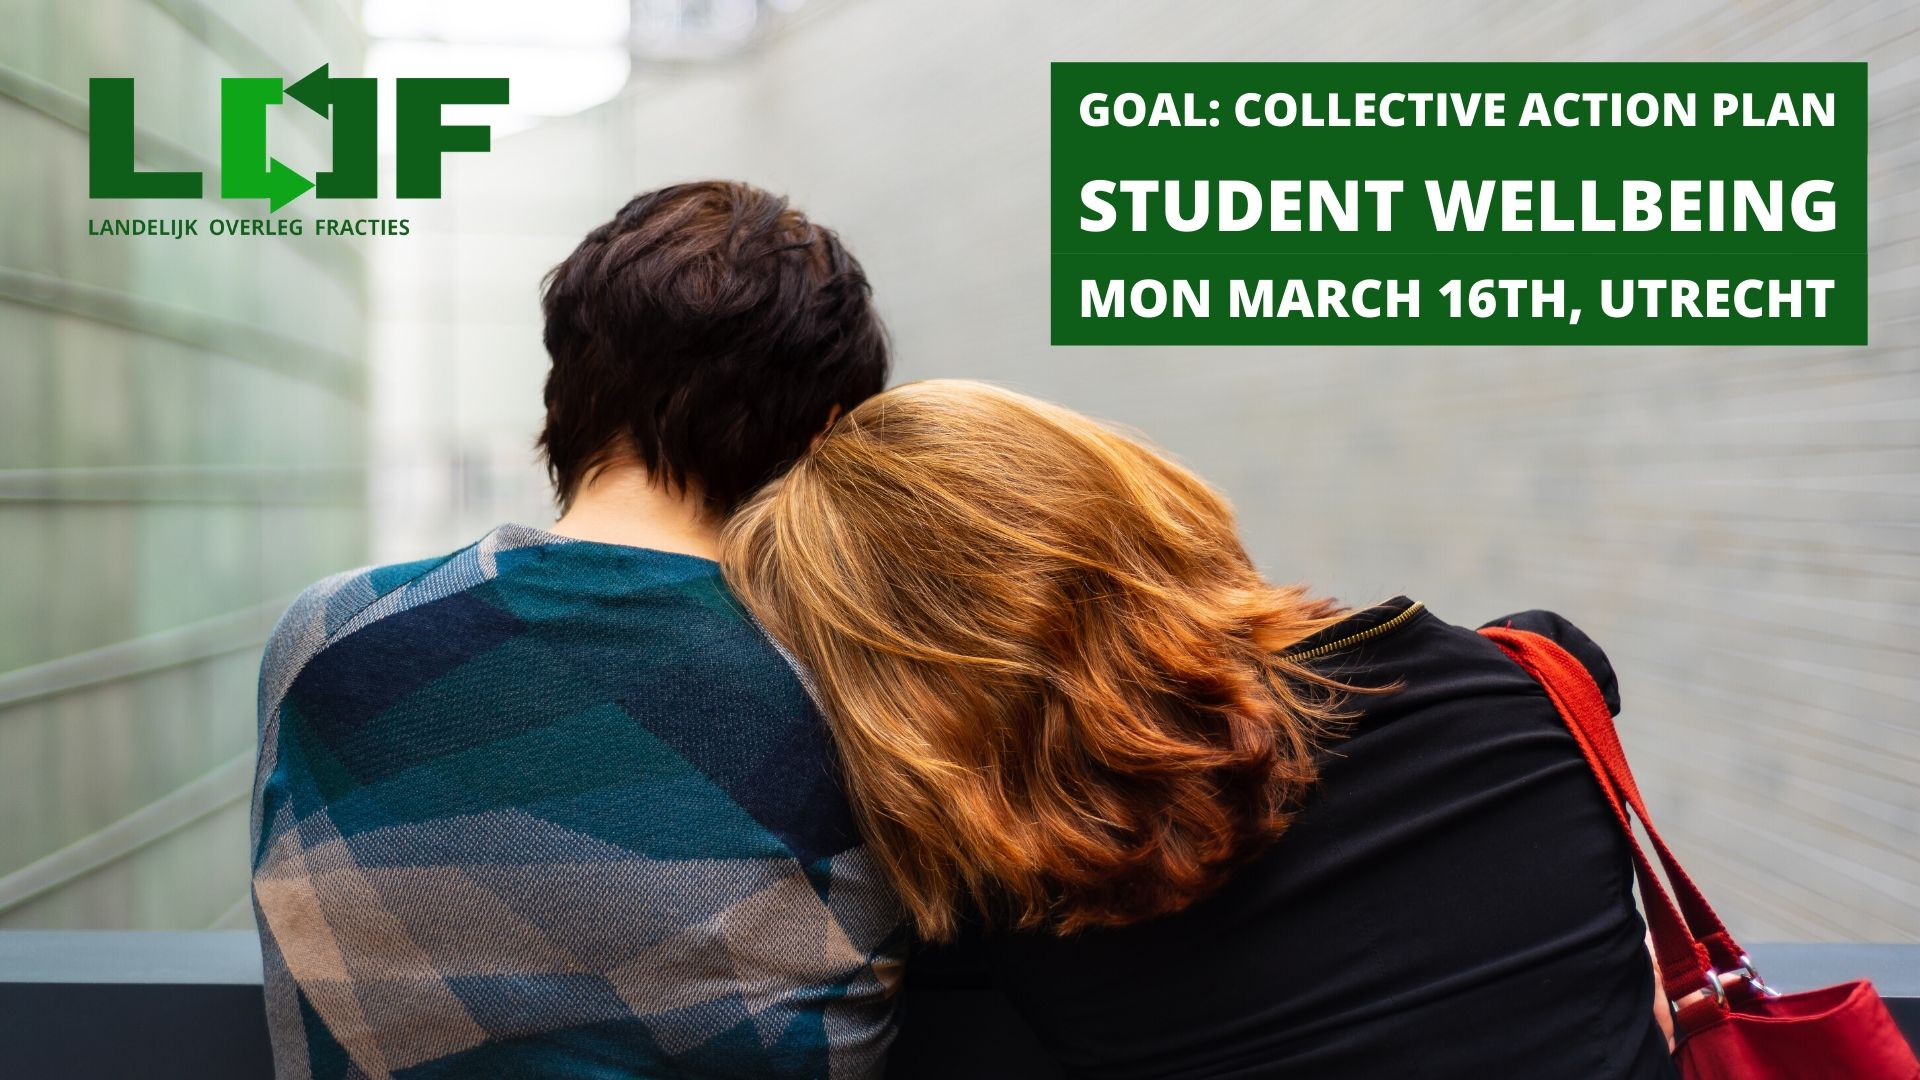 Student Wellbeing on the 16th of March